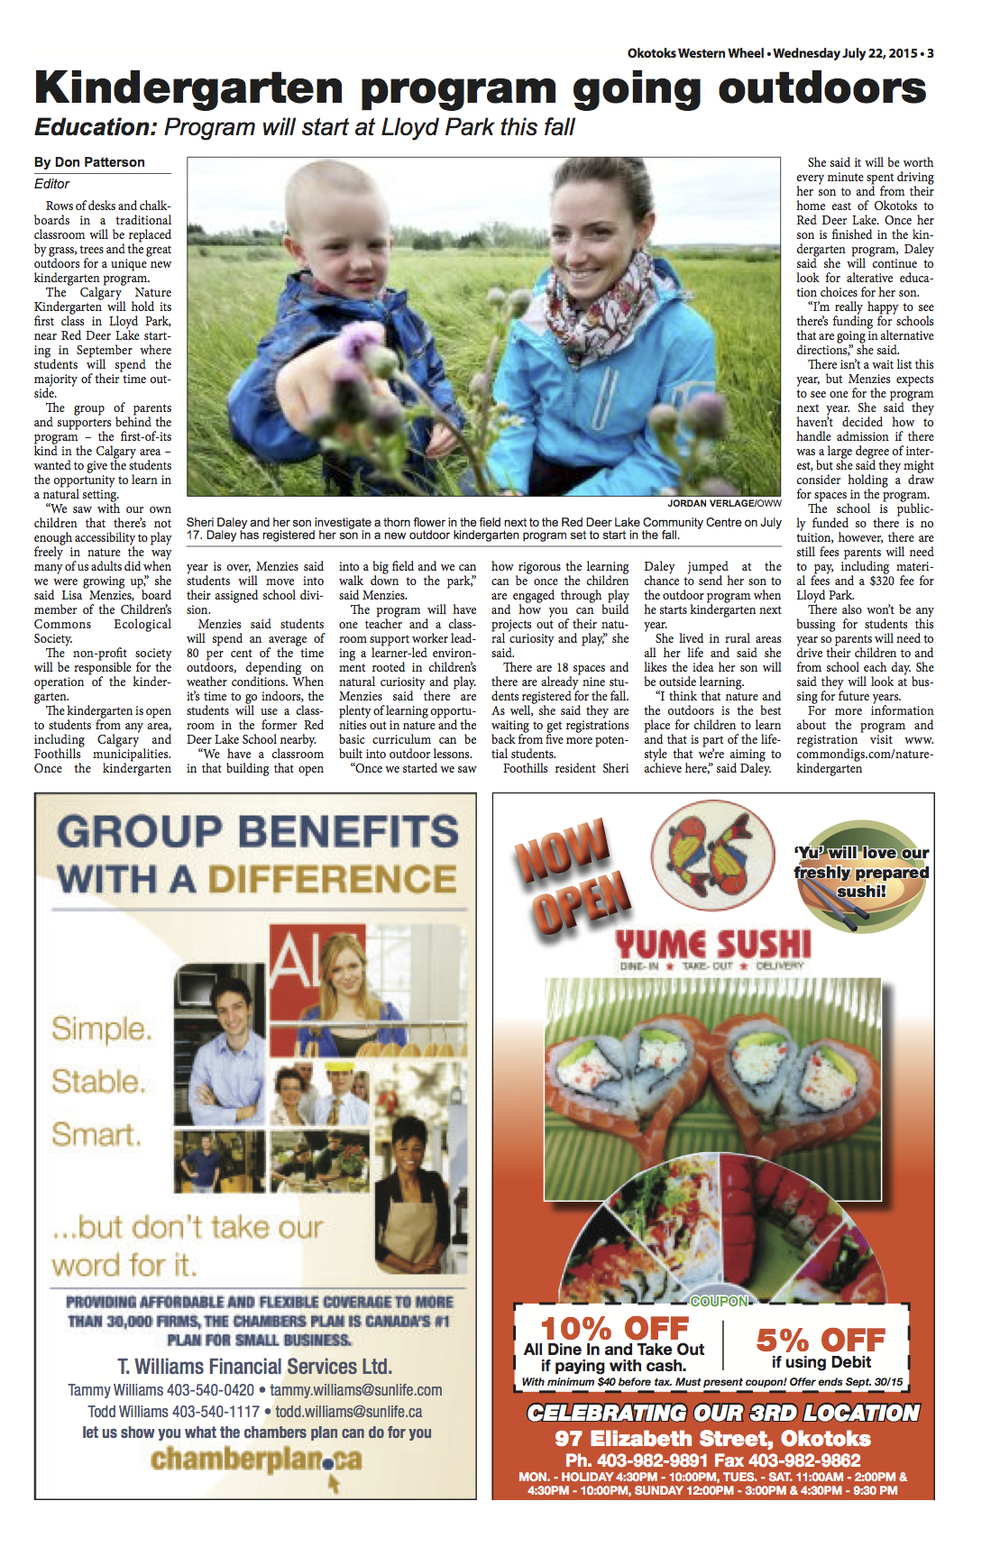 Okotoks Western Wheel, July 2015:   Kindergarten program going outdoors PAGE 3